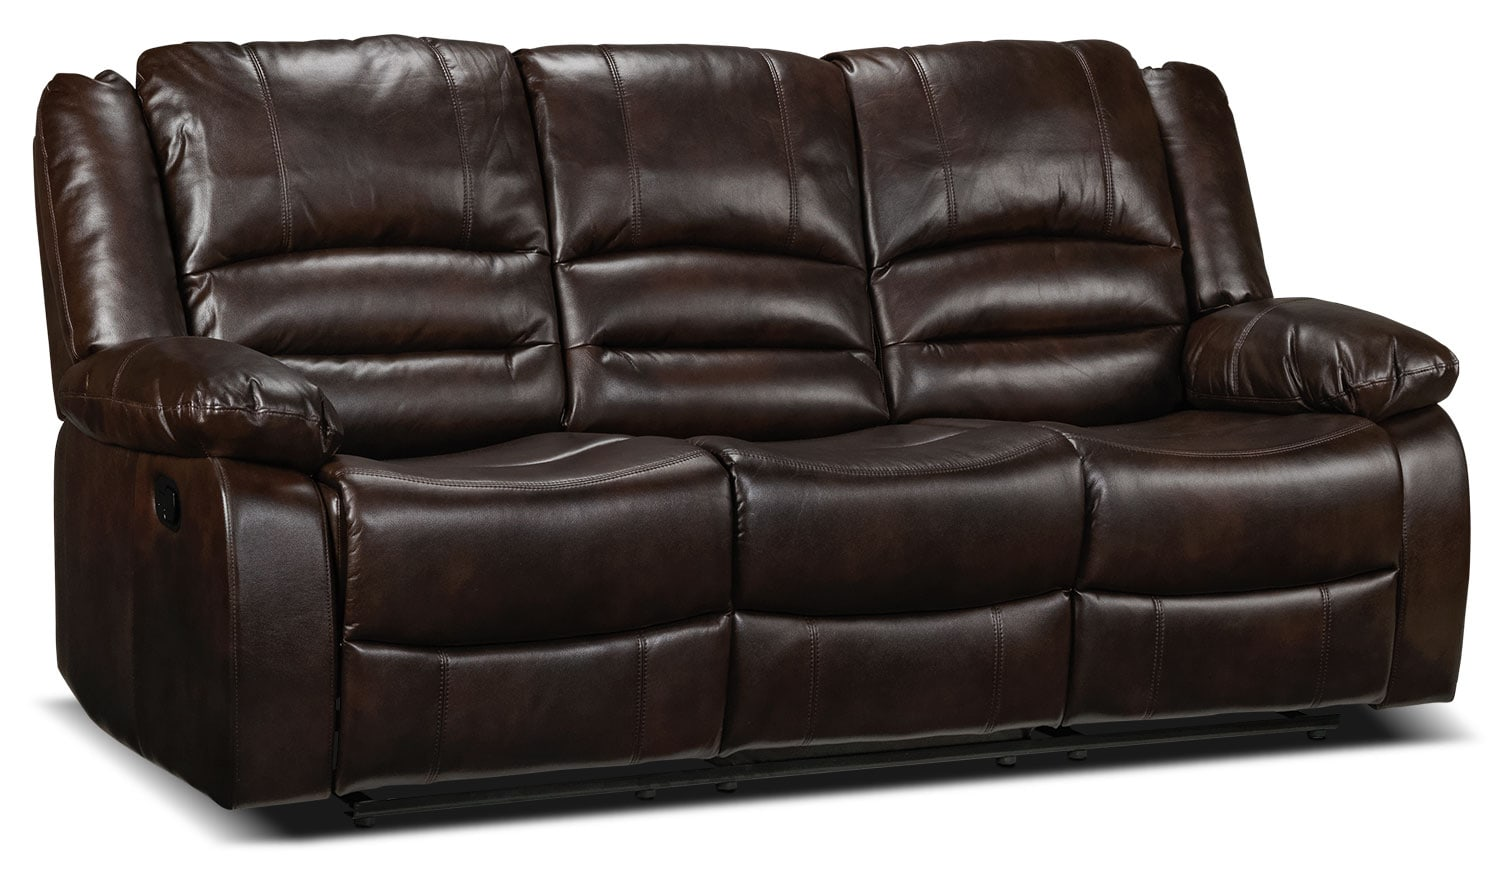 Brooksdale Reclining Sofa - Deep Brown